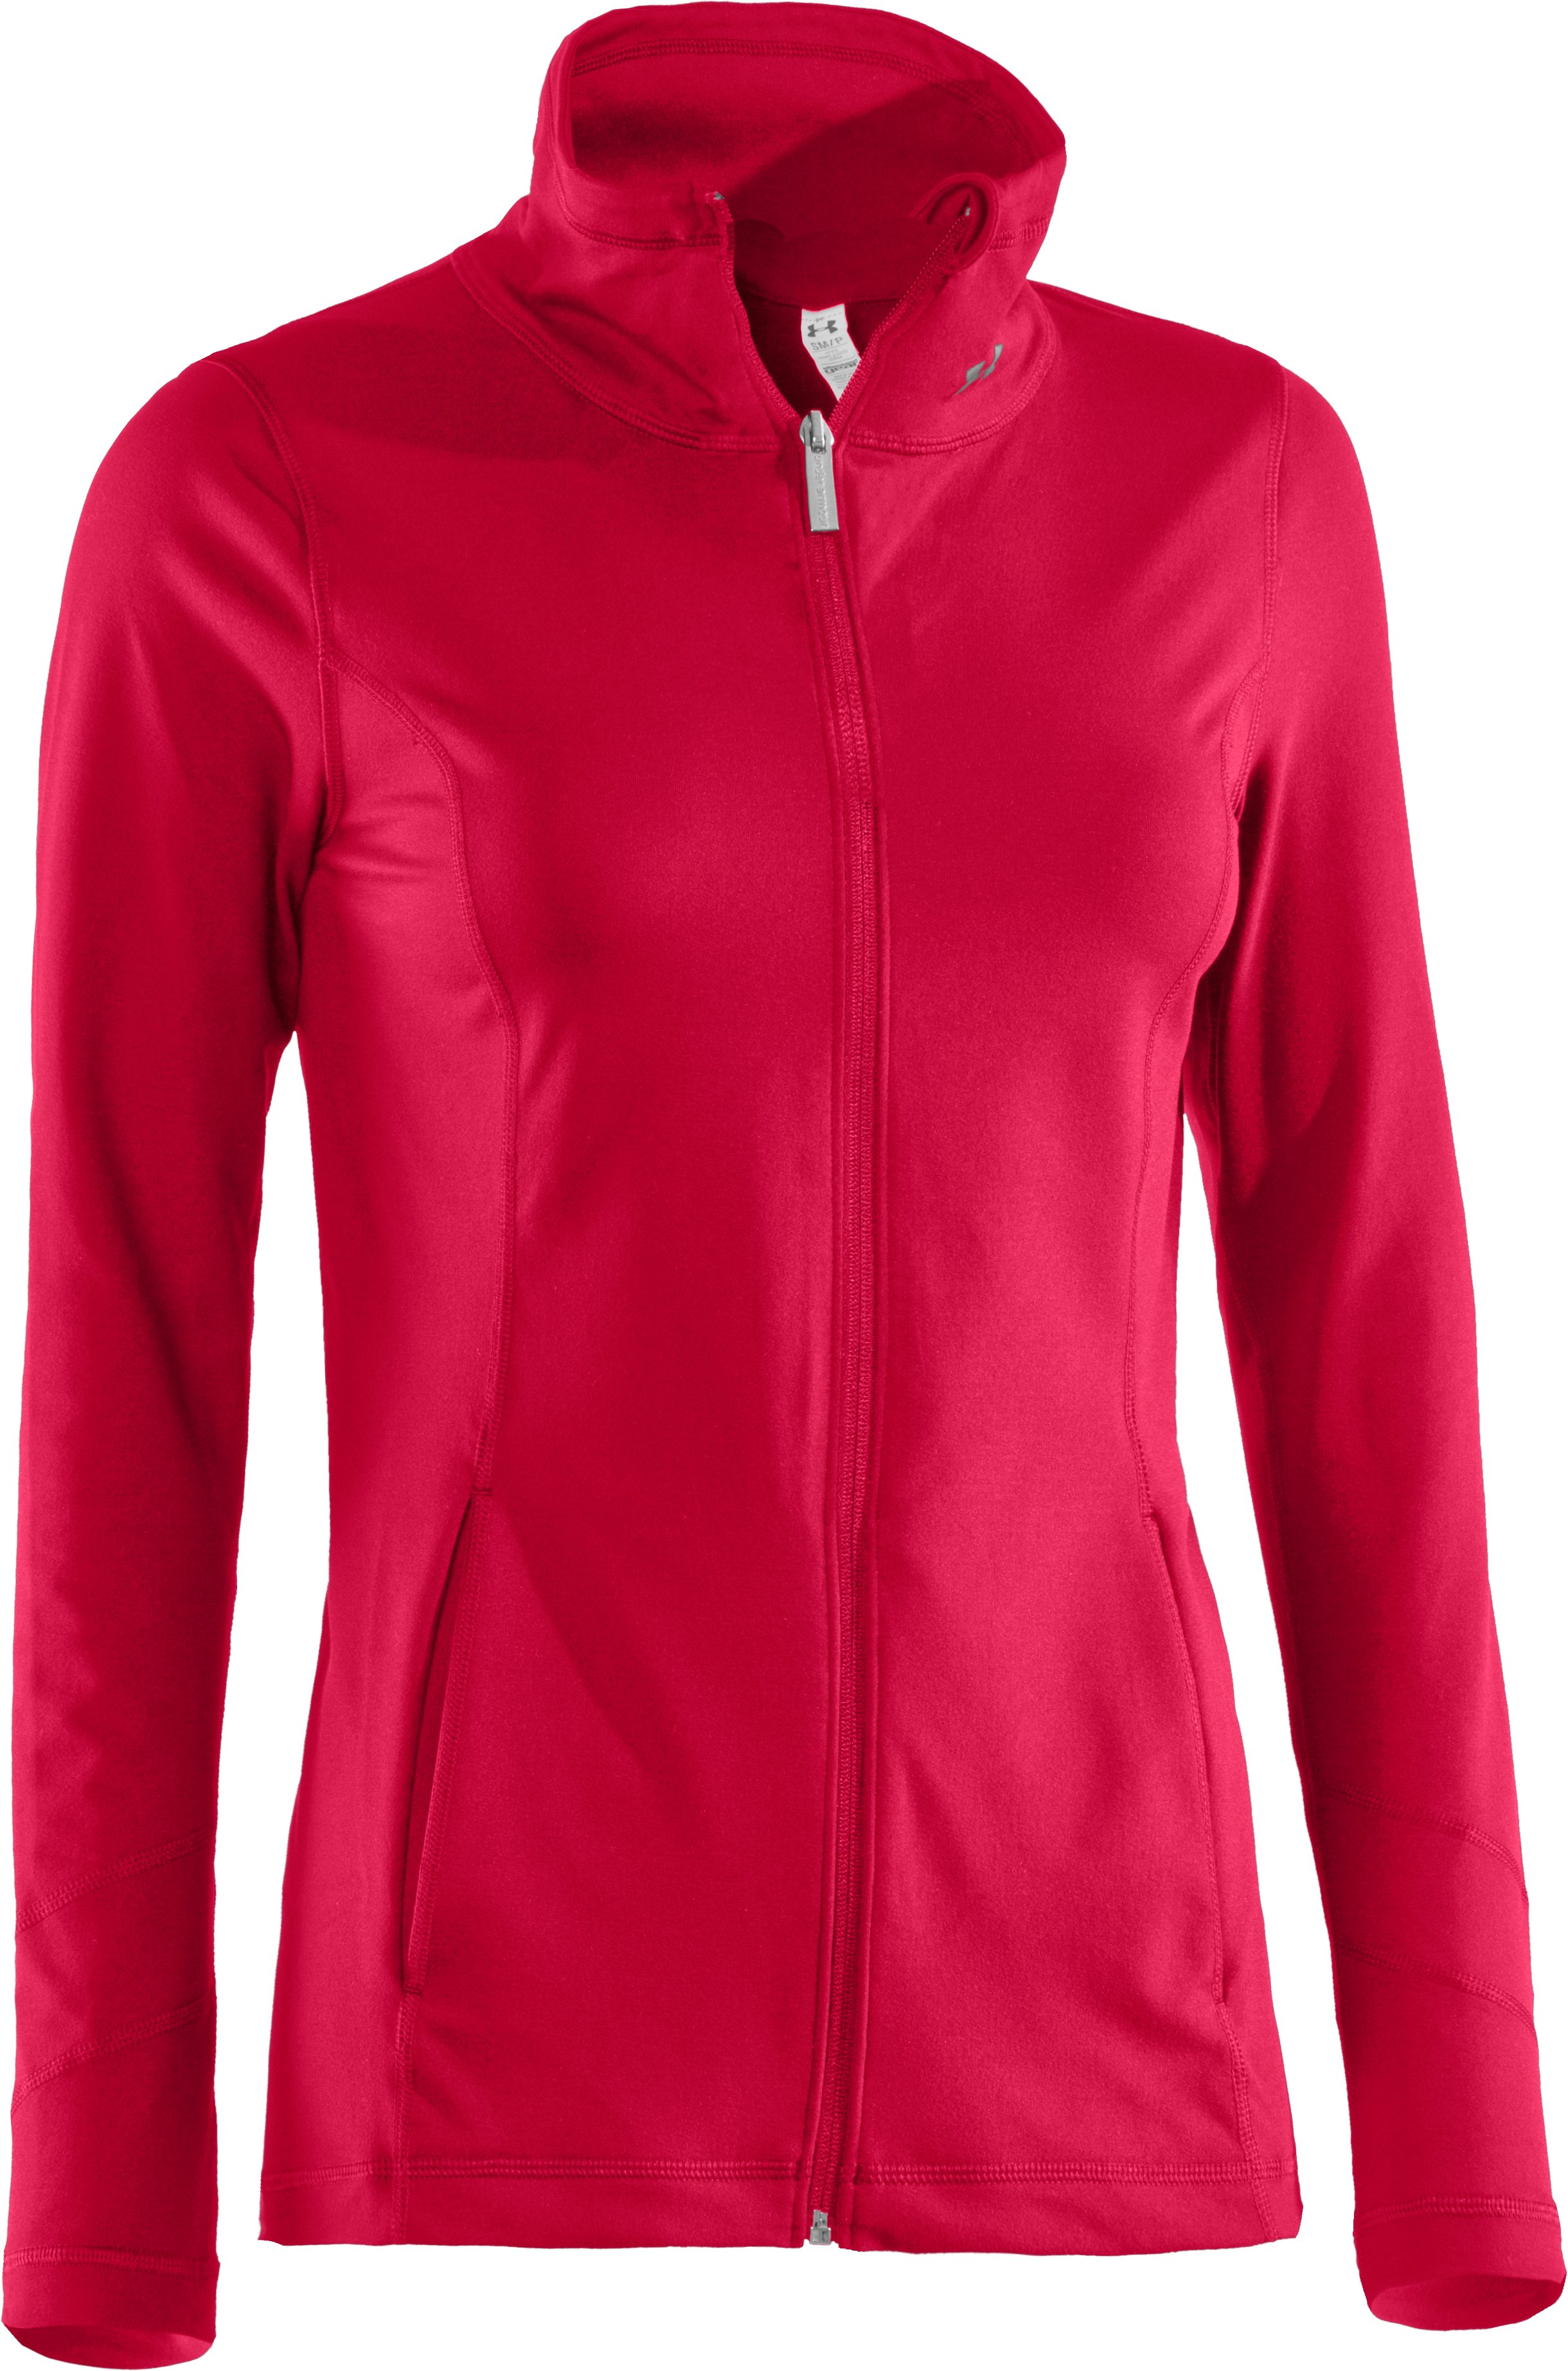 Women's UA Perfect Jacket, KNOCK OUT